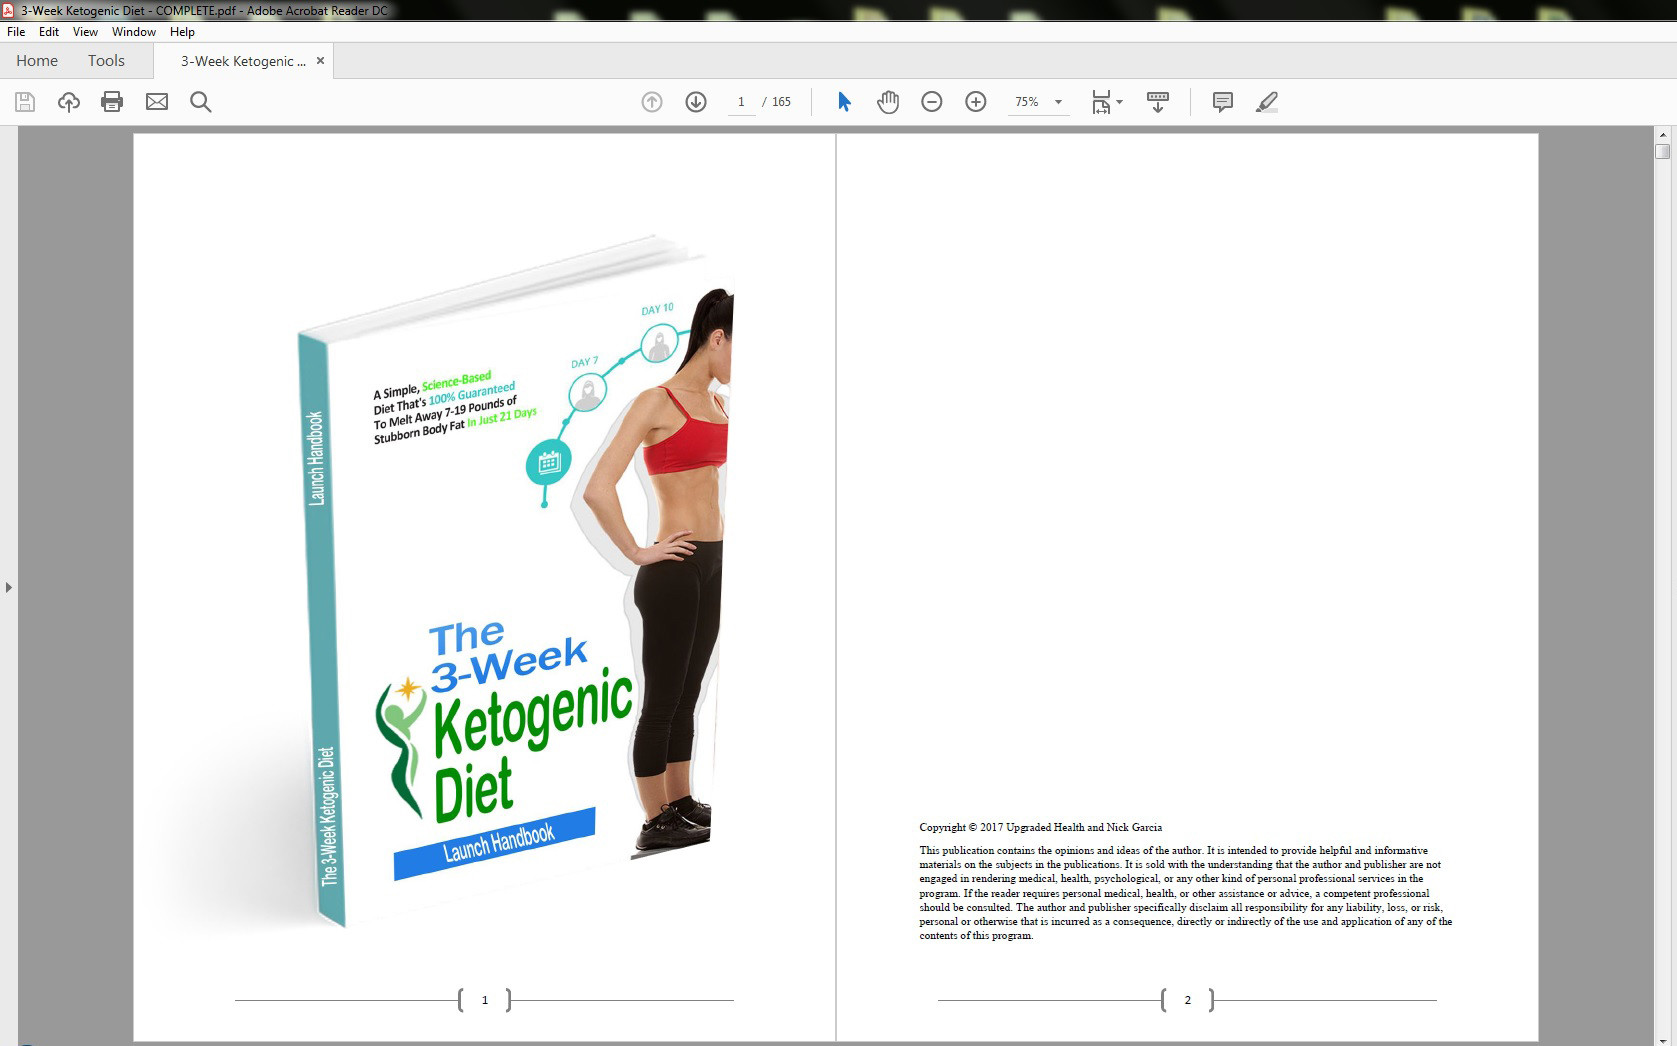 The 3-Week Ketogenic Diet Table of Contents